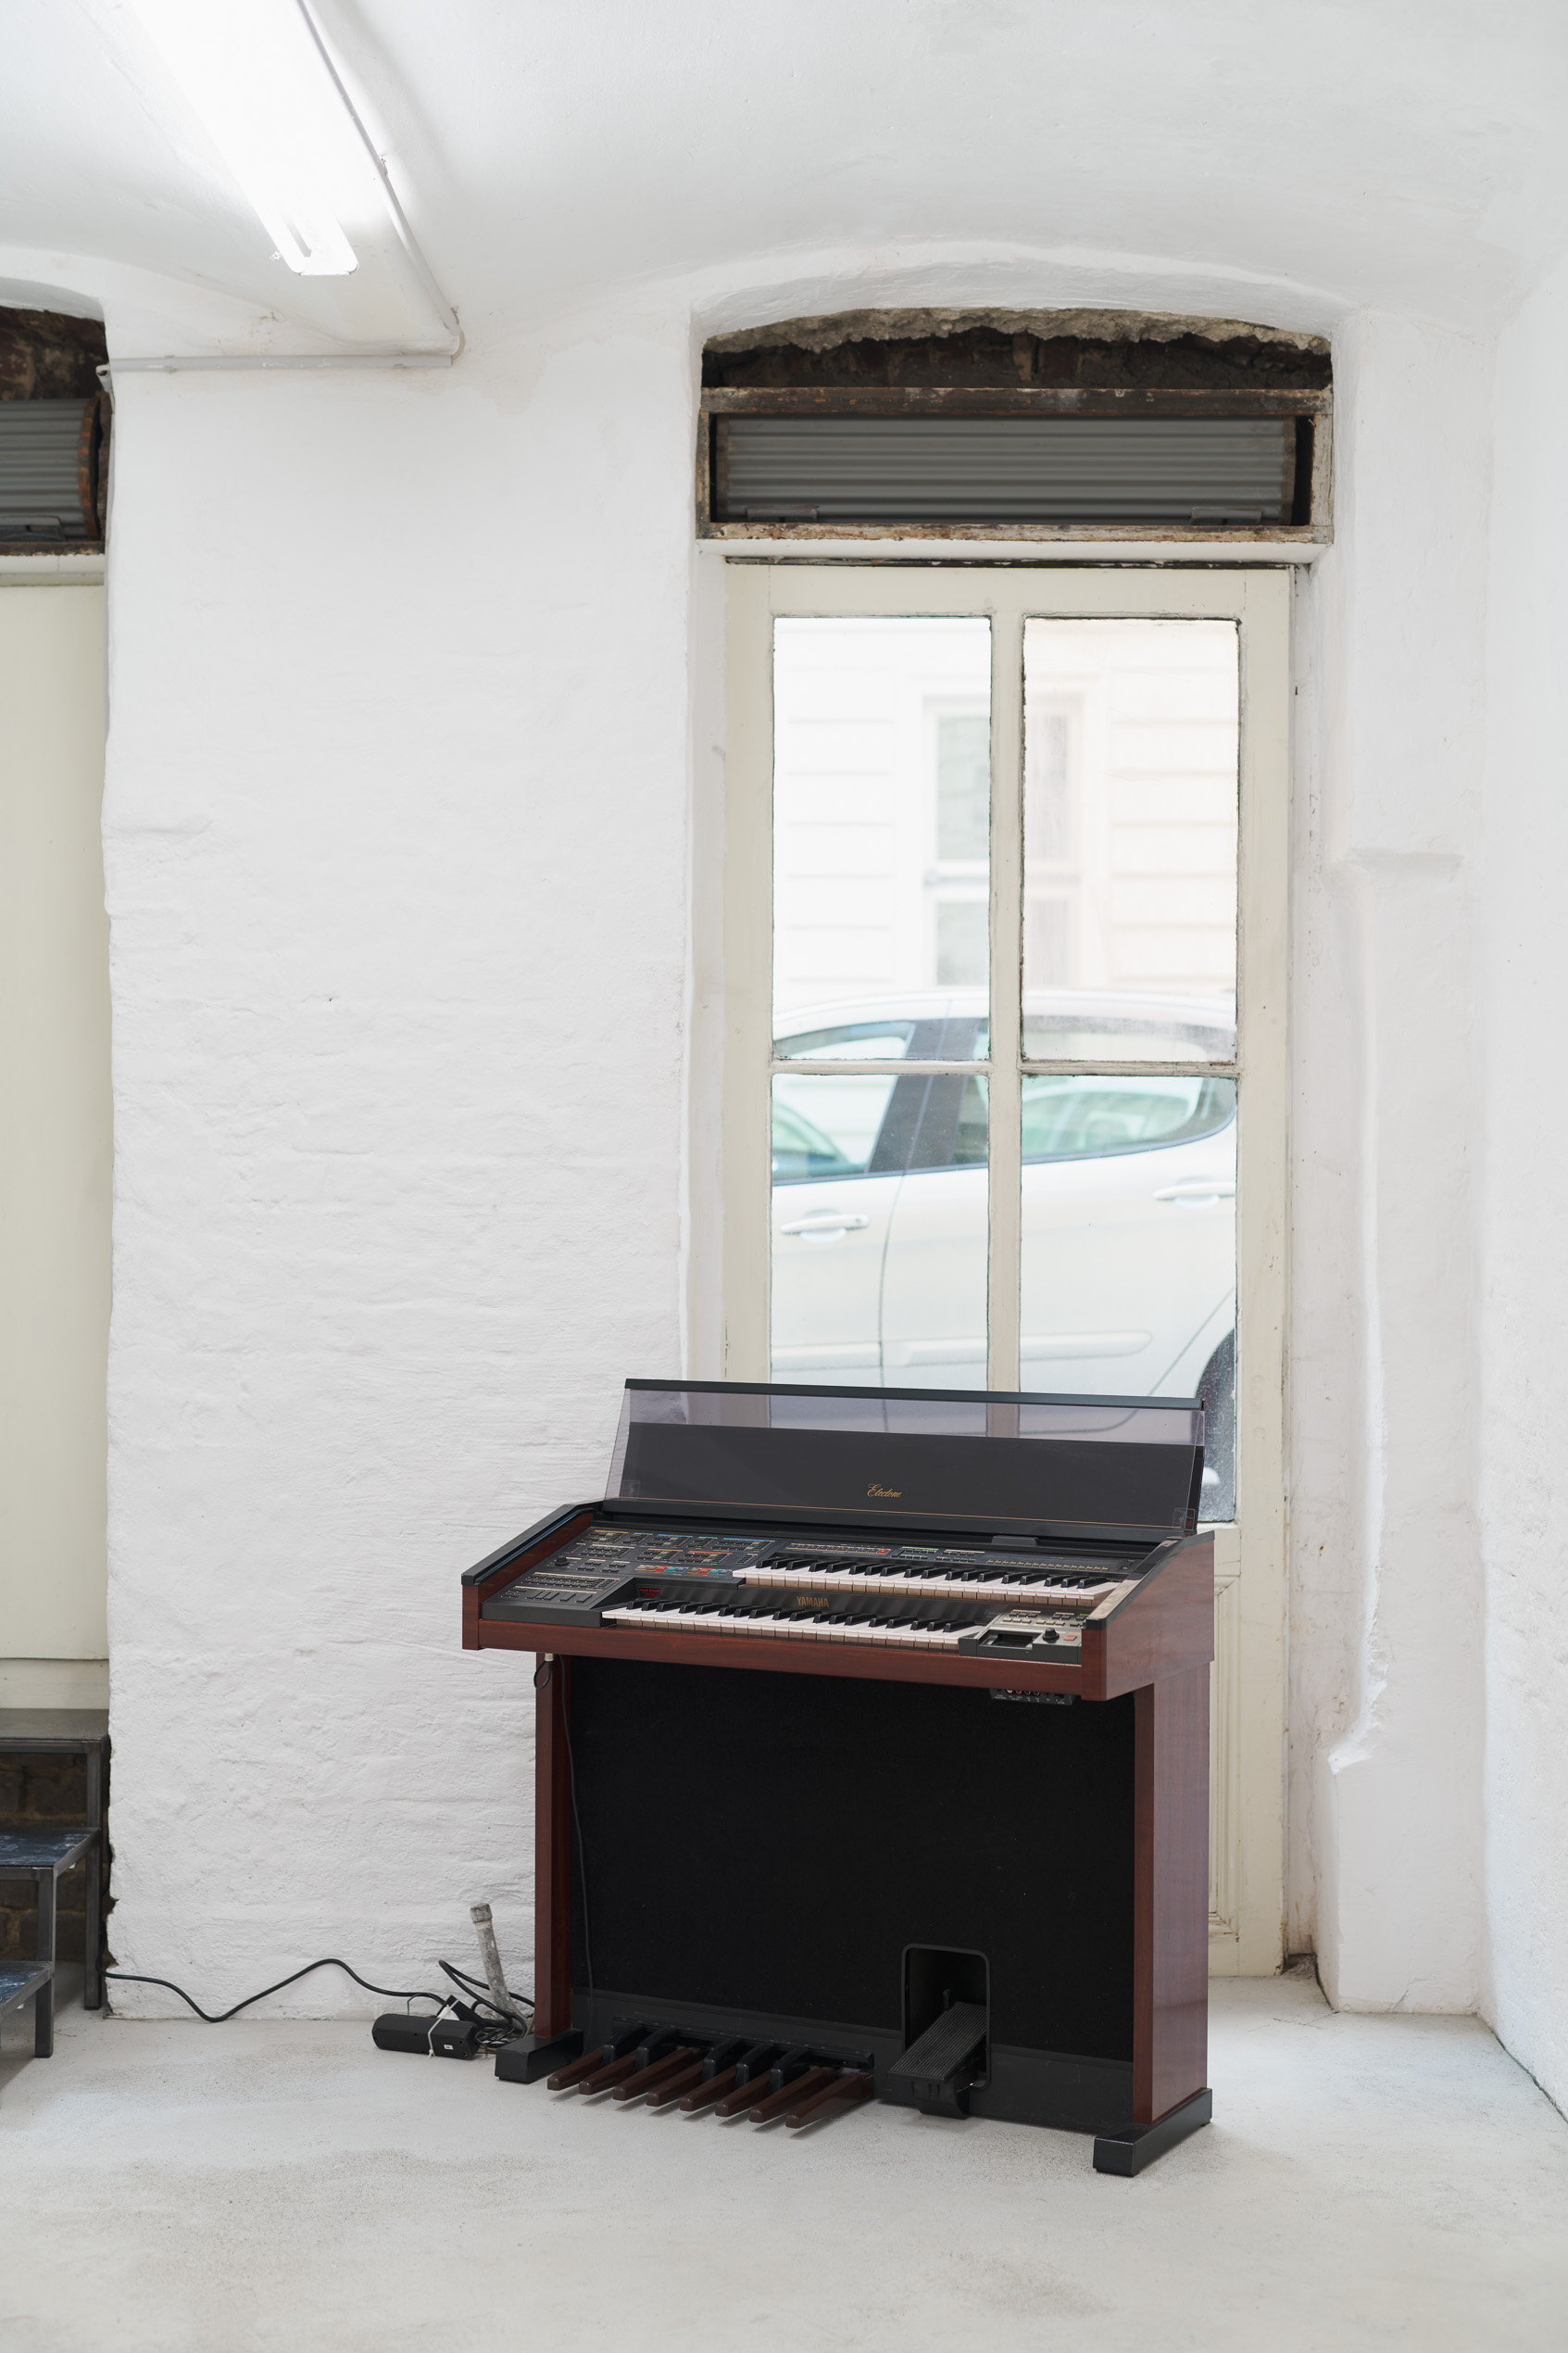 Gallery Organ / Gallery Bench, 2019, Yamaha Electone MR-700, Klinger Organ MIDI Reader, Standard MIDI File, cables and zip ties, 98,5x108x44cm; bench, 56x60x30cm